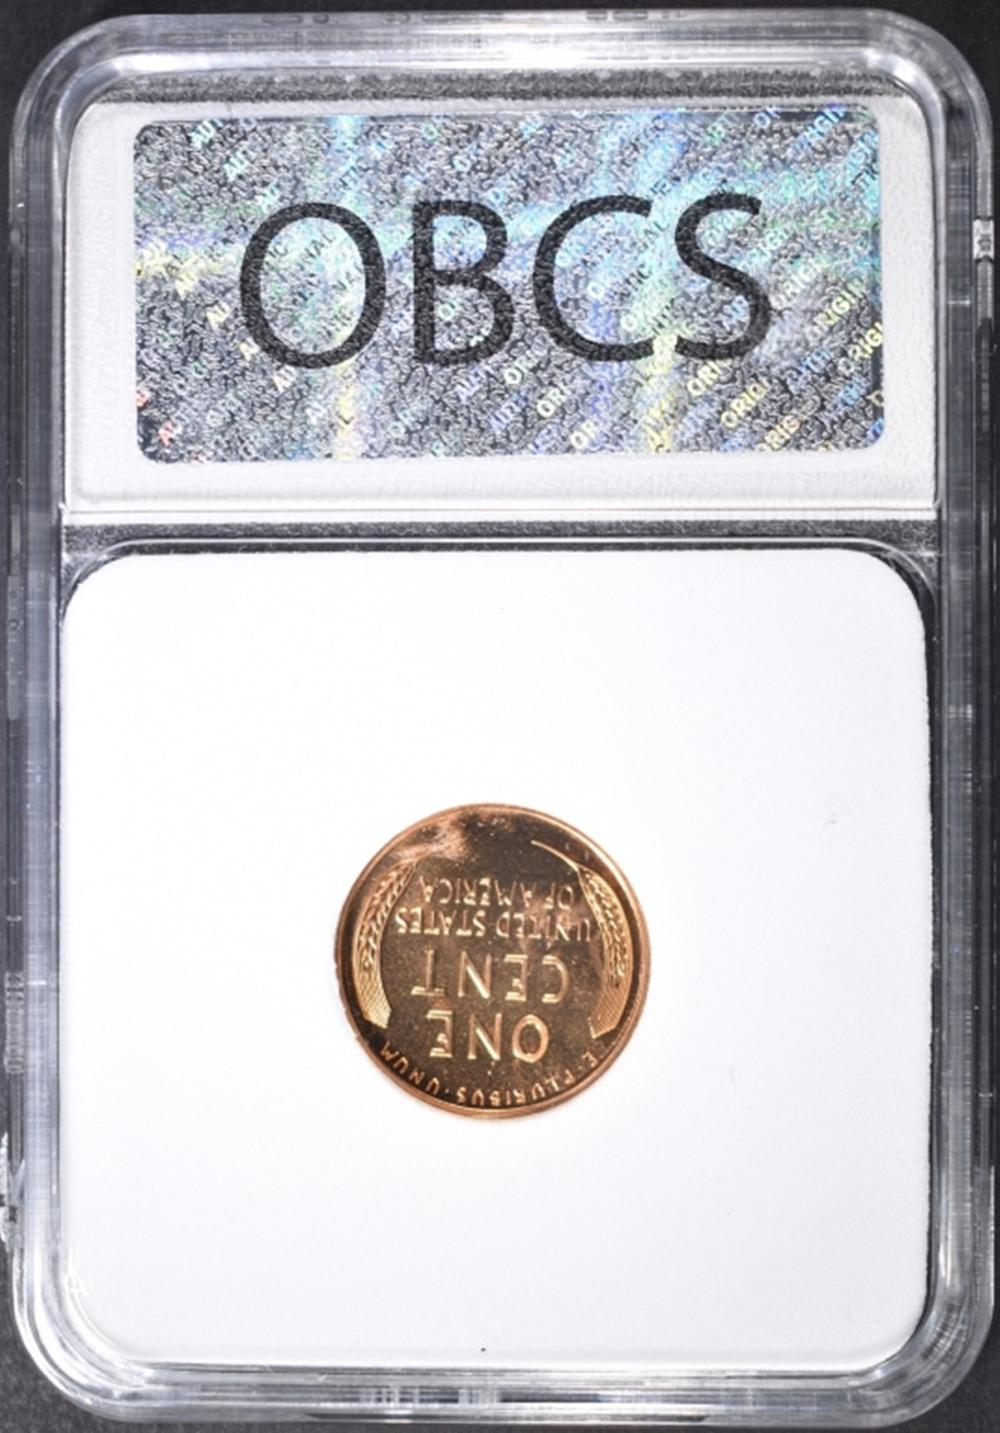 Lot 170: 1955 LINCOLN CENT, OBCS SUPERB GEM+ PR RED